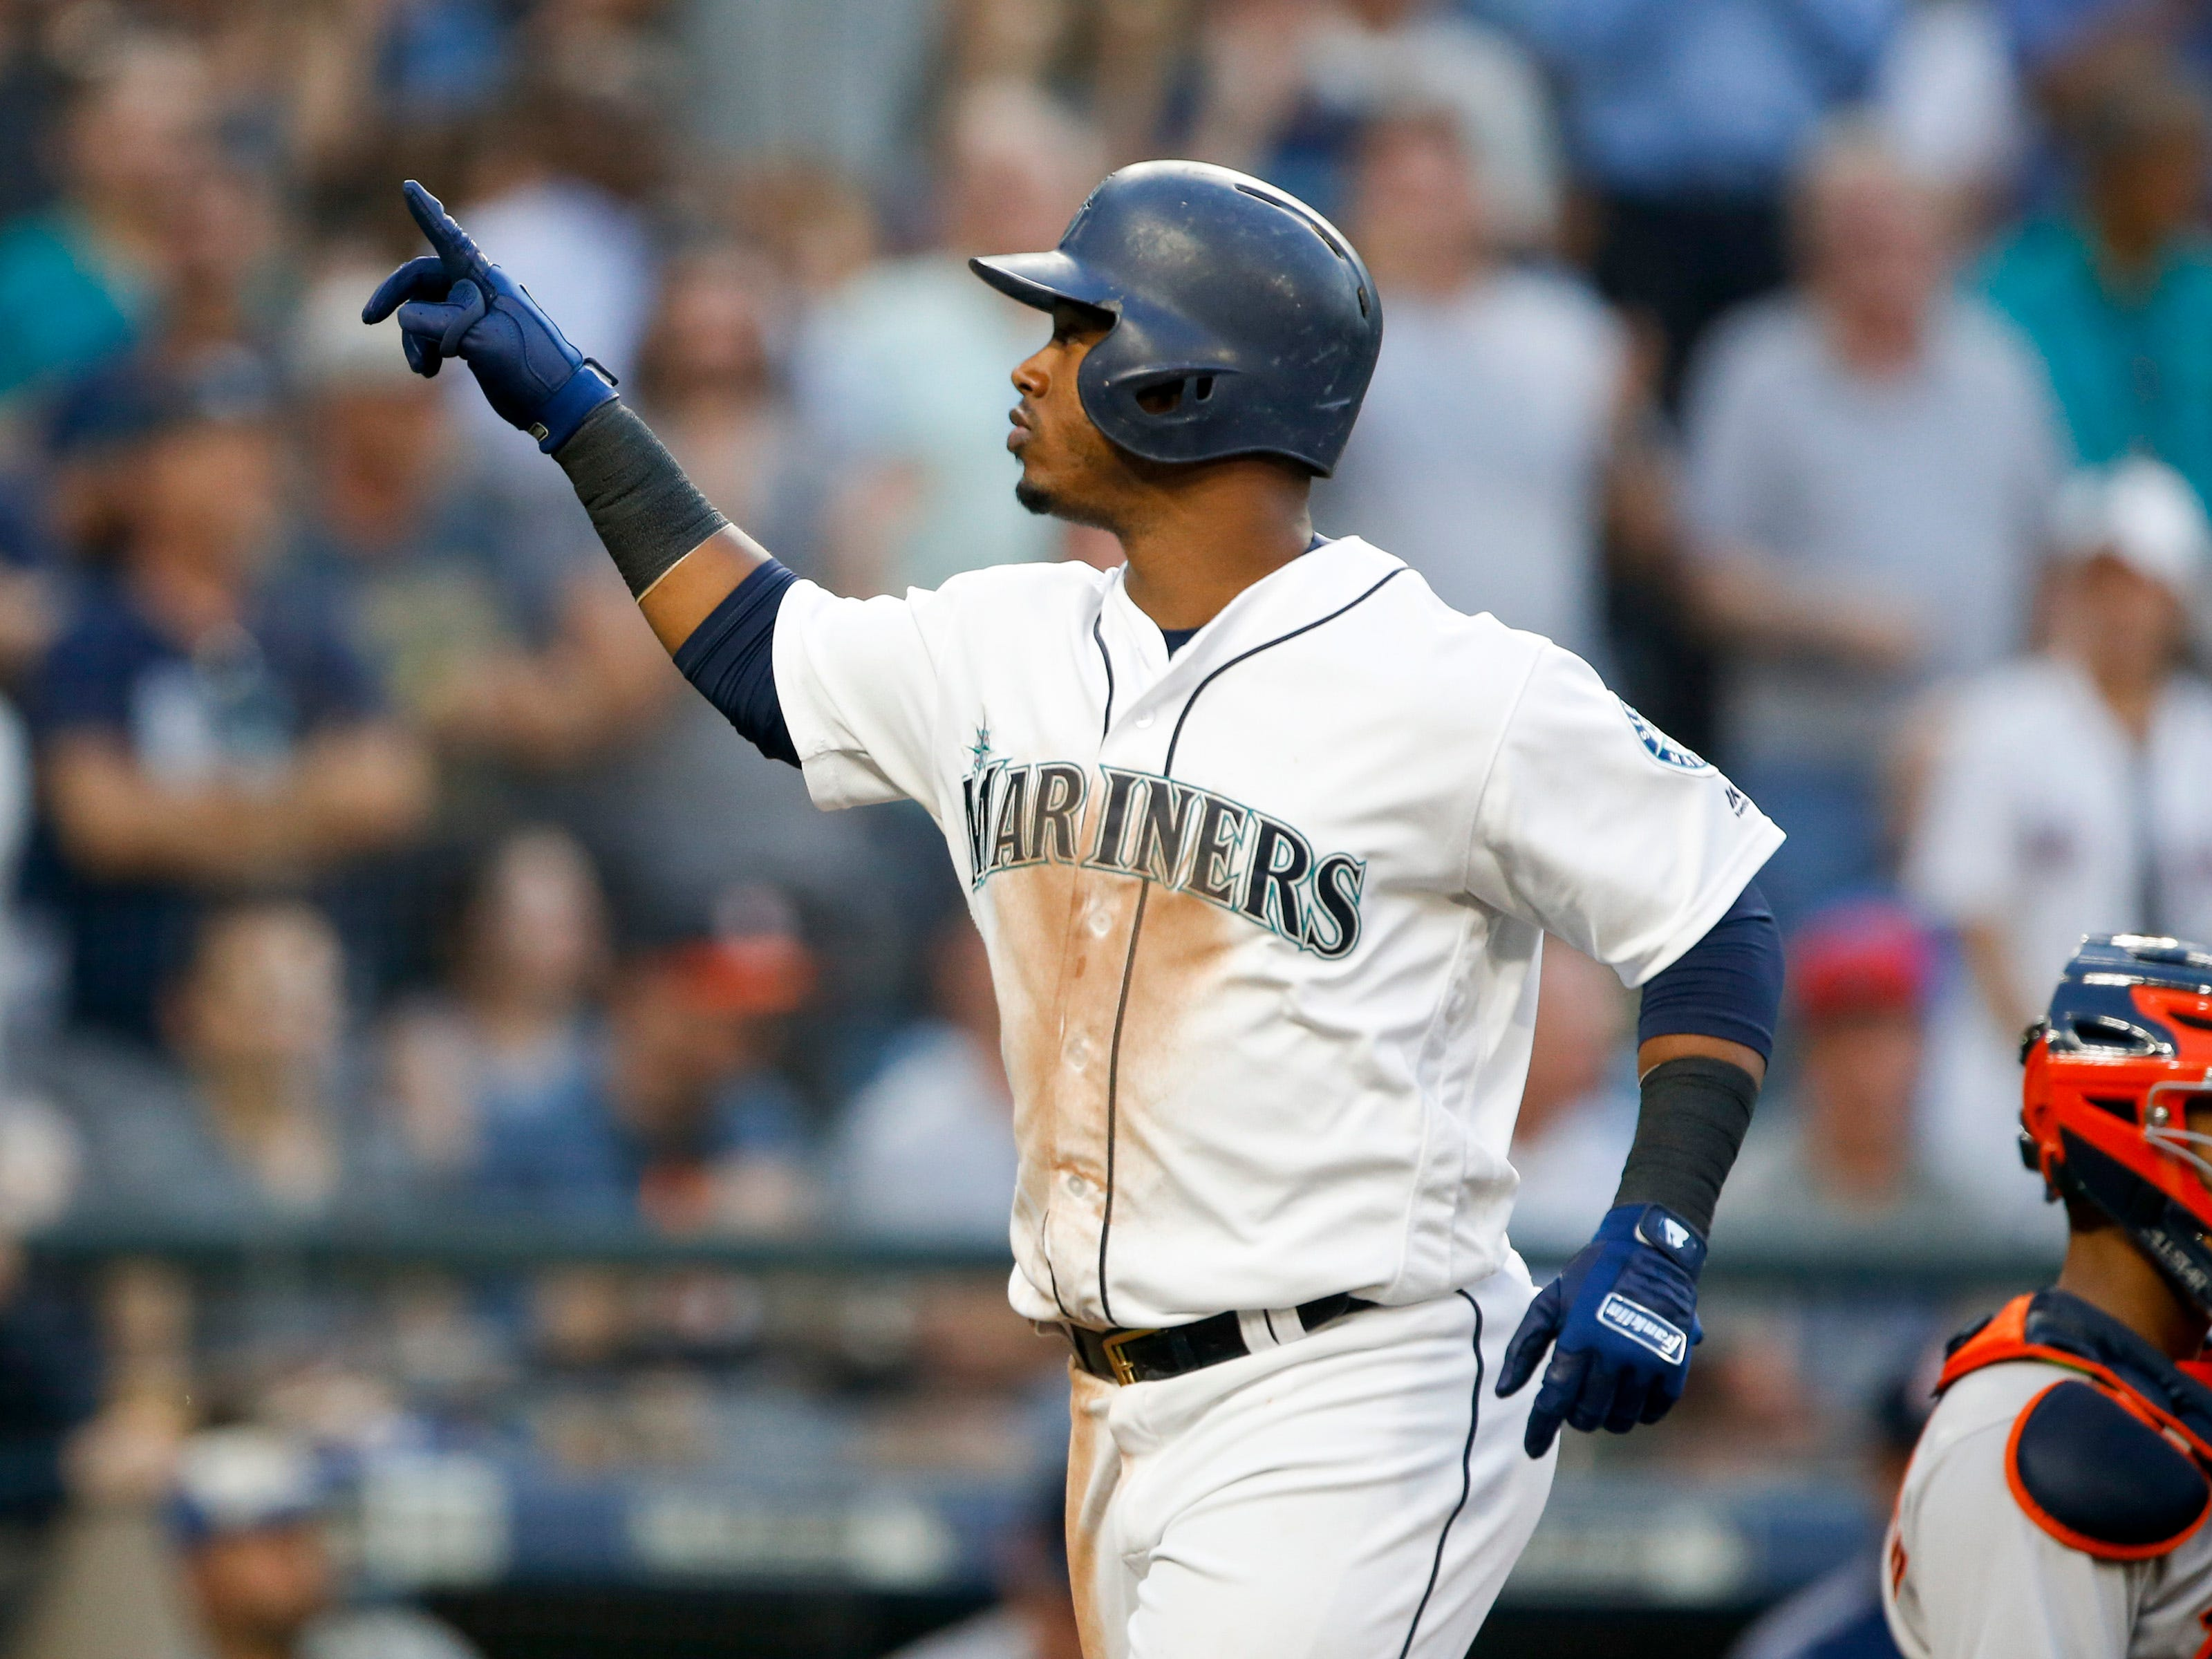 Dec. 3: The Mariners traded SS Jean Segura, RHP Juan Nicasio and LHP James Pazos to the Phillies for 1B Carlos Santana and SS J.P. Crawford.